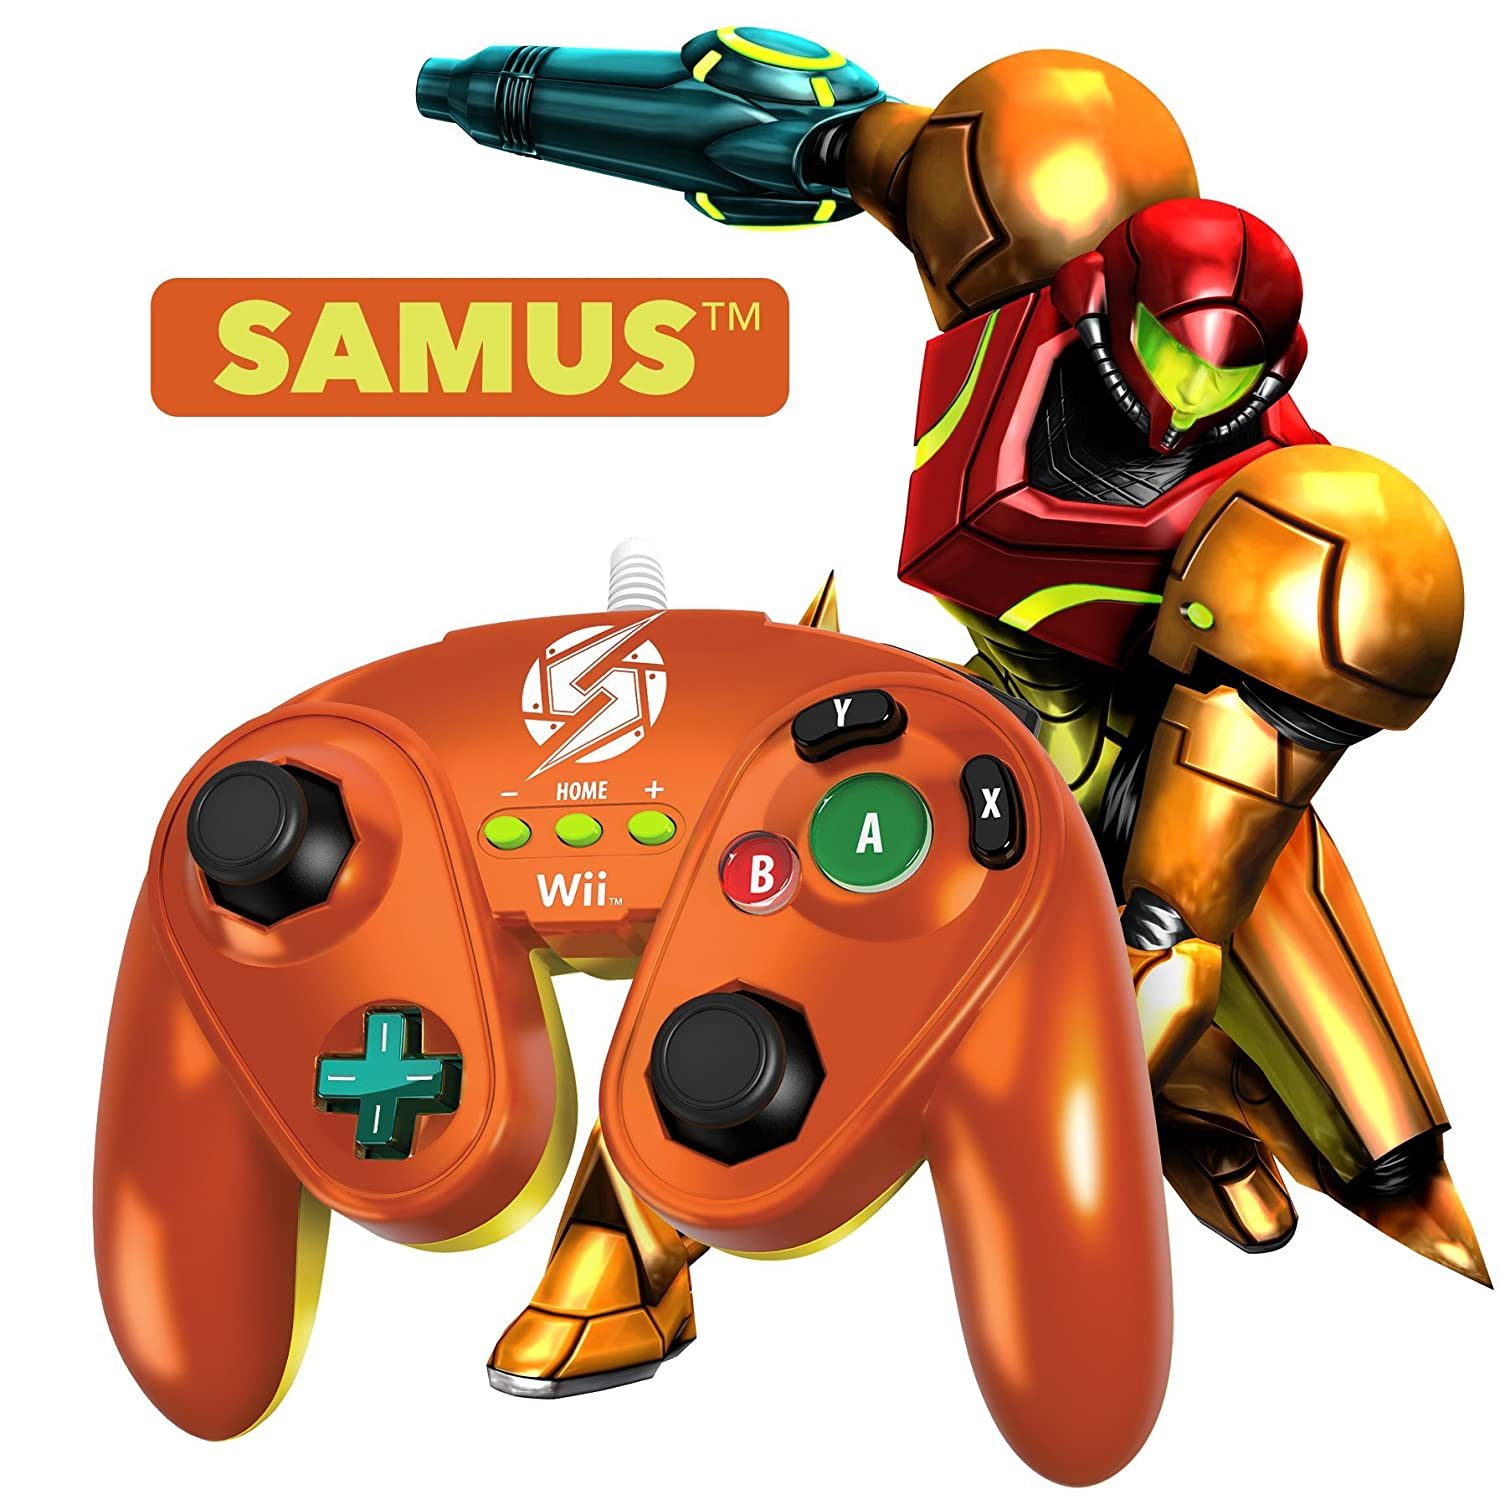 Pdp Wired Fight Pad For Wii U Samus Nintendo Mario Kart Luigi Circuit Games Dual Hd 3840x1080 Computer And Video